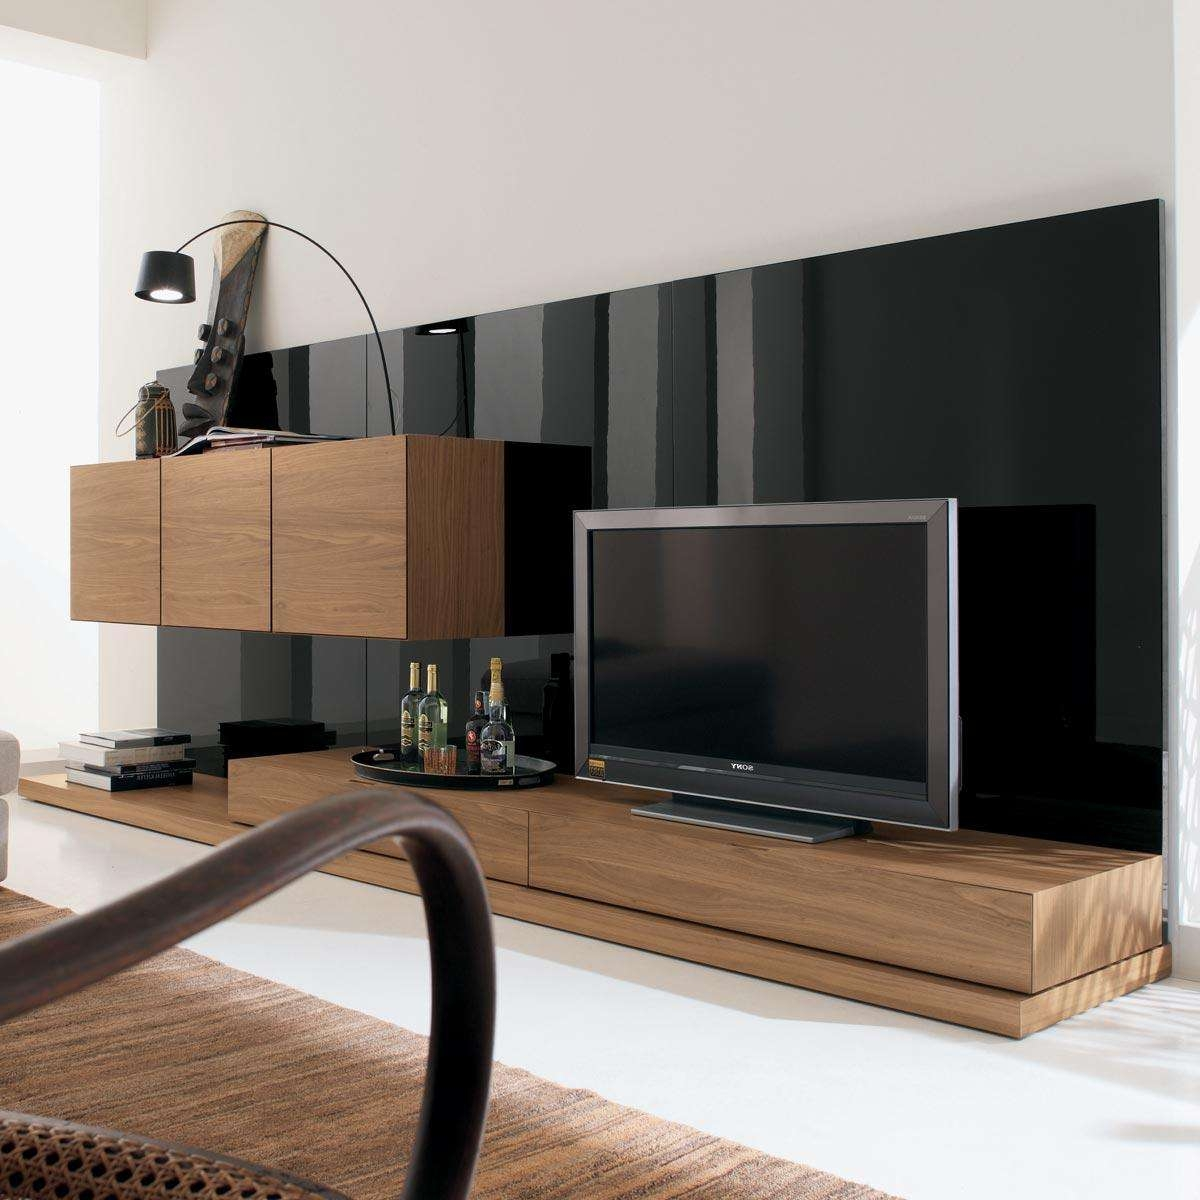 Modern Nature Wood Big Screen Tv Stand Wall Mounted Living Room Throughout Sleek Tv Stands (View 9 of 15)